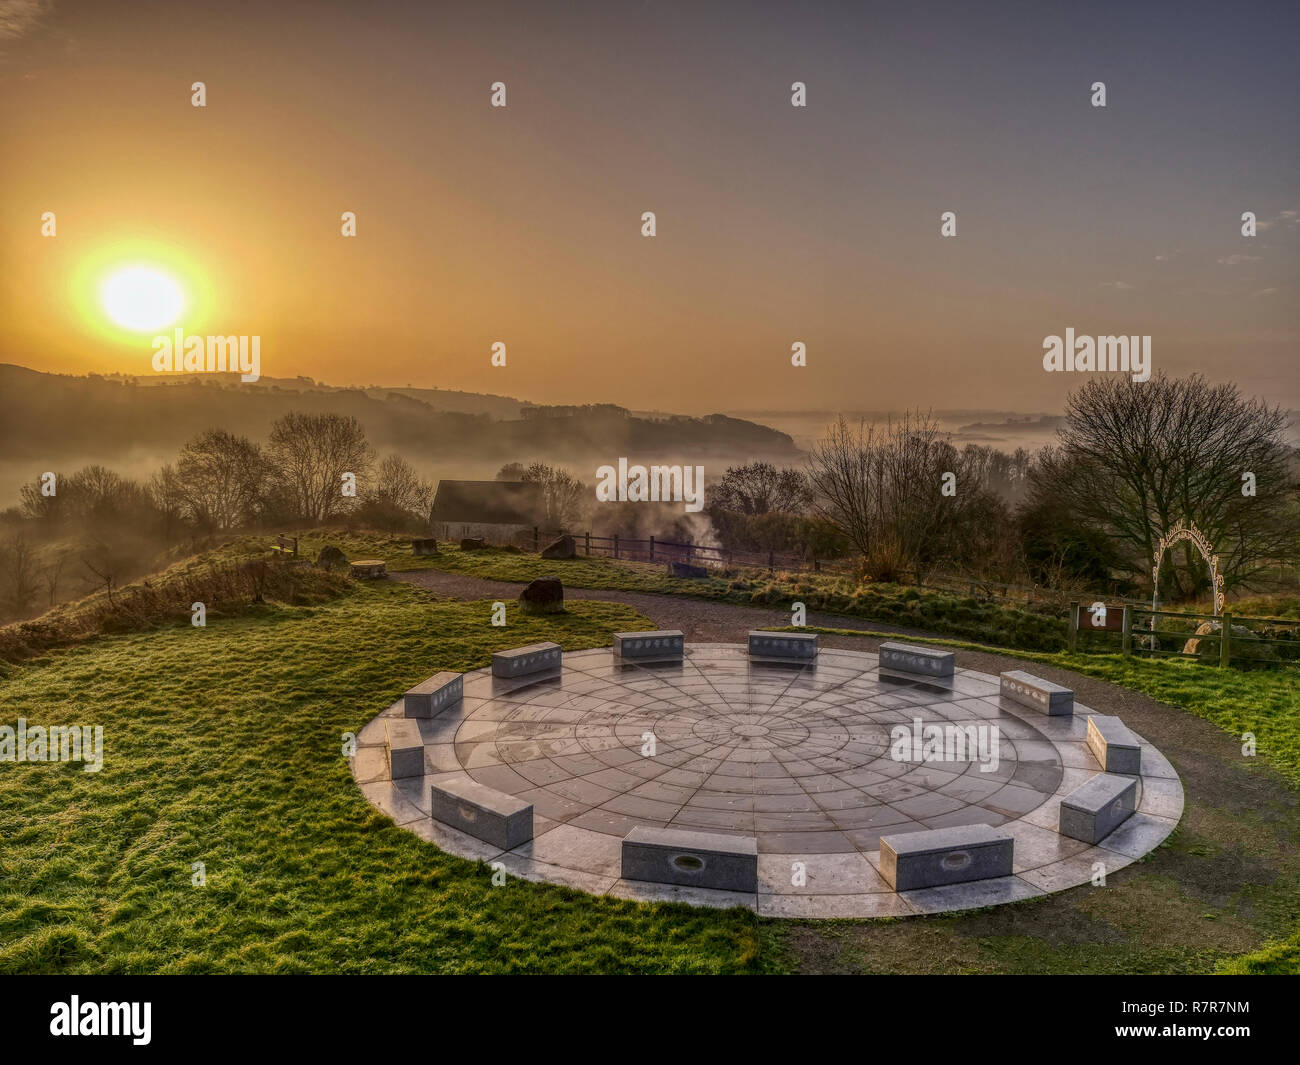 Wirksworth, Derbyshire Dales, Peak District, UK. 11th December, 2018. UK Weather: spectacular sunrise with cloud inversion at the star disc above Wirksworth in the Derbyshire Dales, Peak District National Park Credit: Doug Blane/Alamy Live News Stock Photo